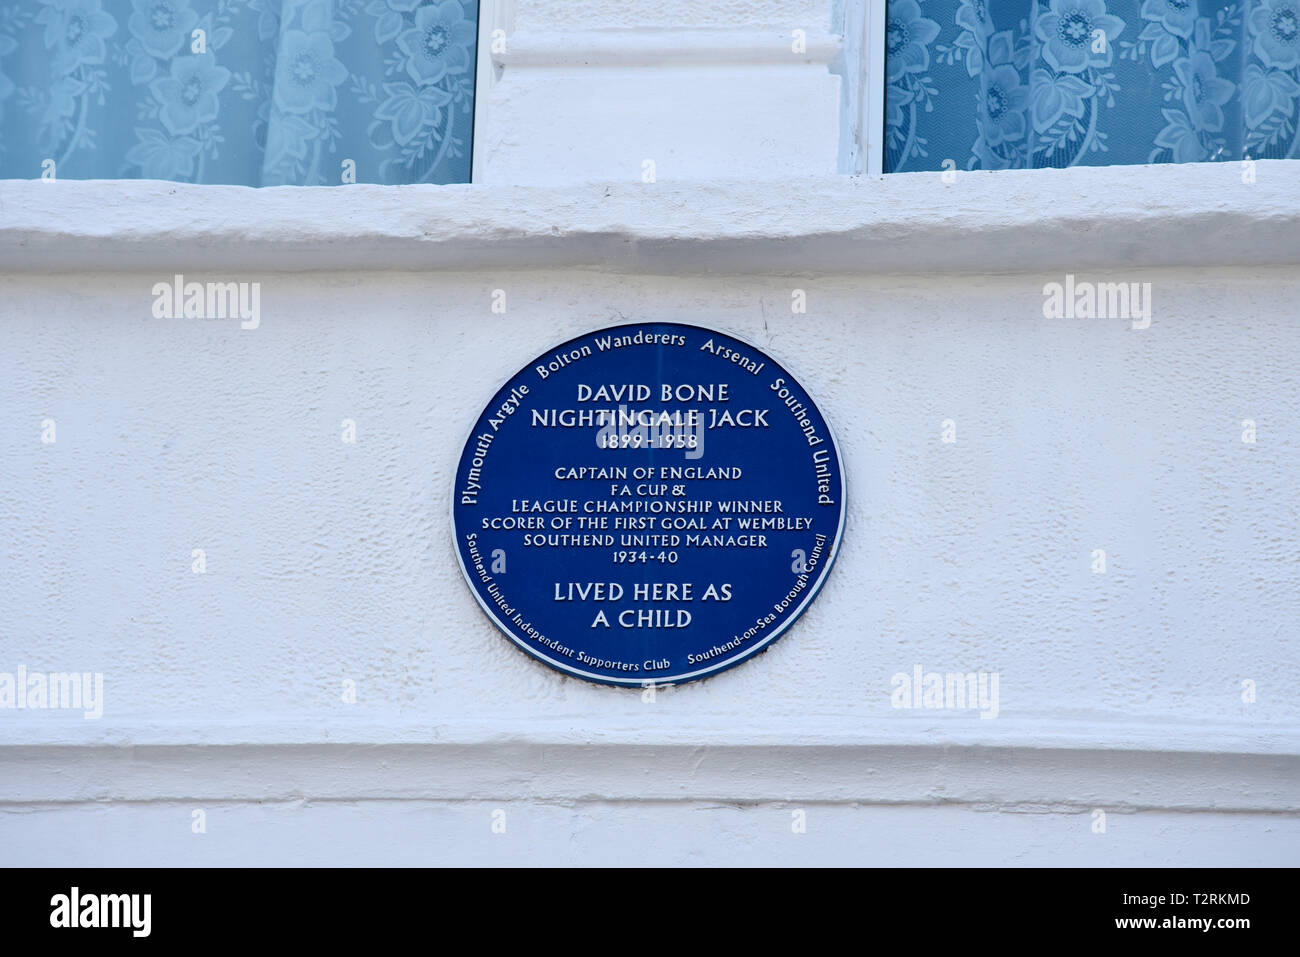 Blue plaque commemorating David Bone Nightingale Jack, England, Plymouth Bolton, Arsenal and Southend football player who scored first goal at Wembley - Stock Image